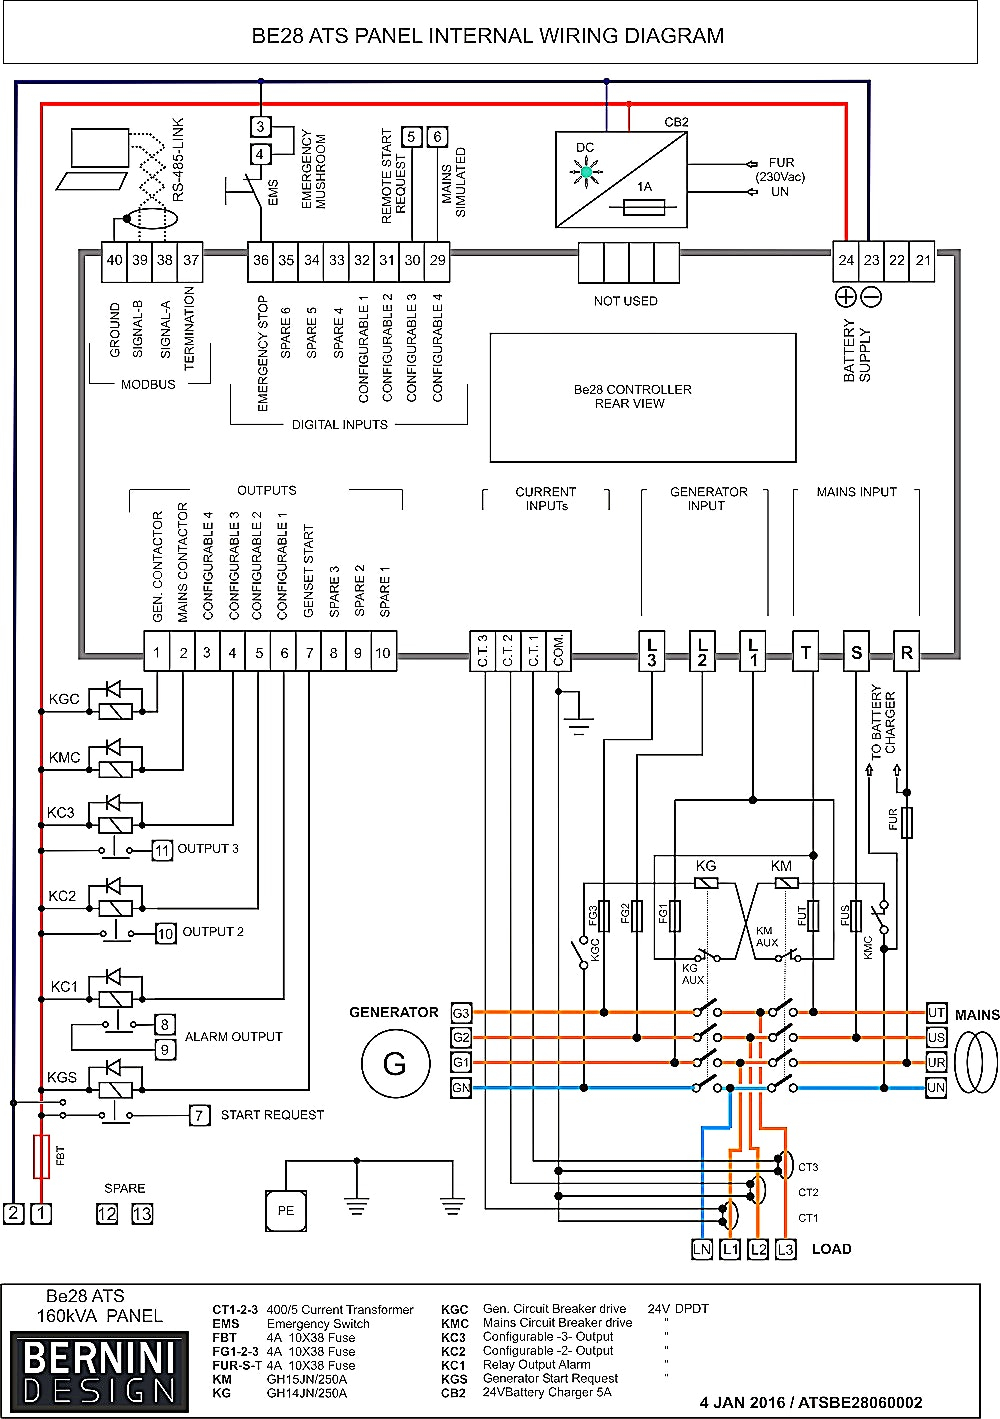 generator automatic transfer switch wiring diagram Collection-Generac Automatic Transfer Switch Wiring Diagram Simple Design Between Solargenerator And 9-o